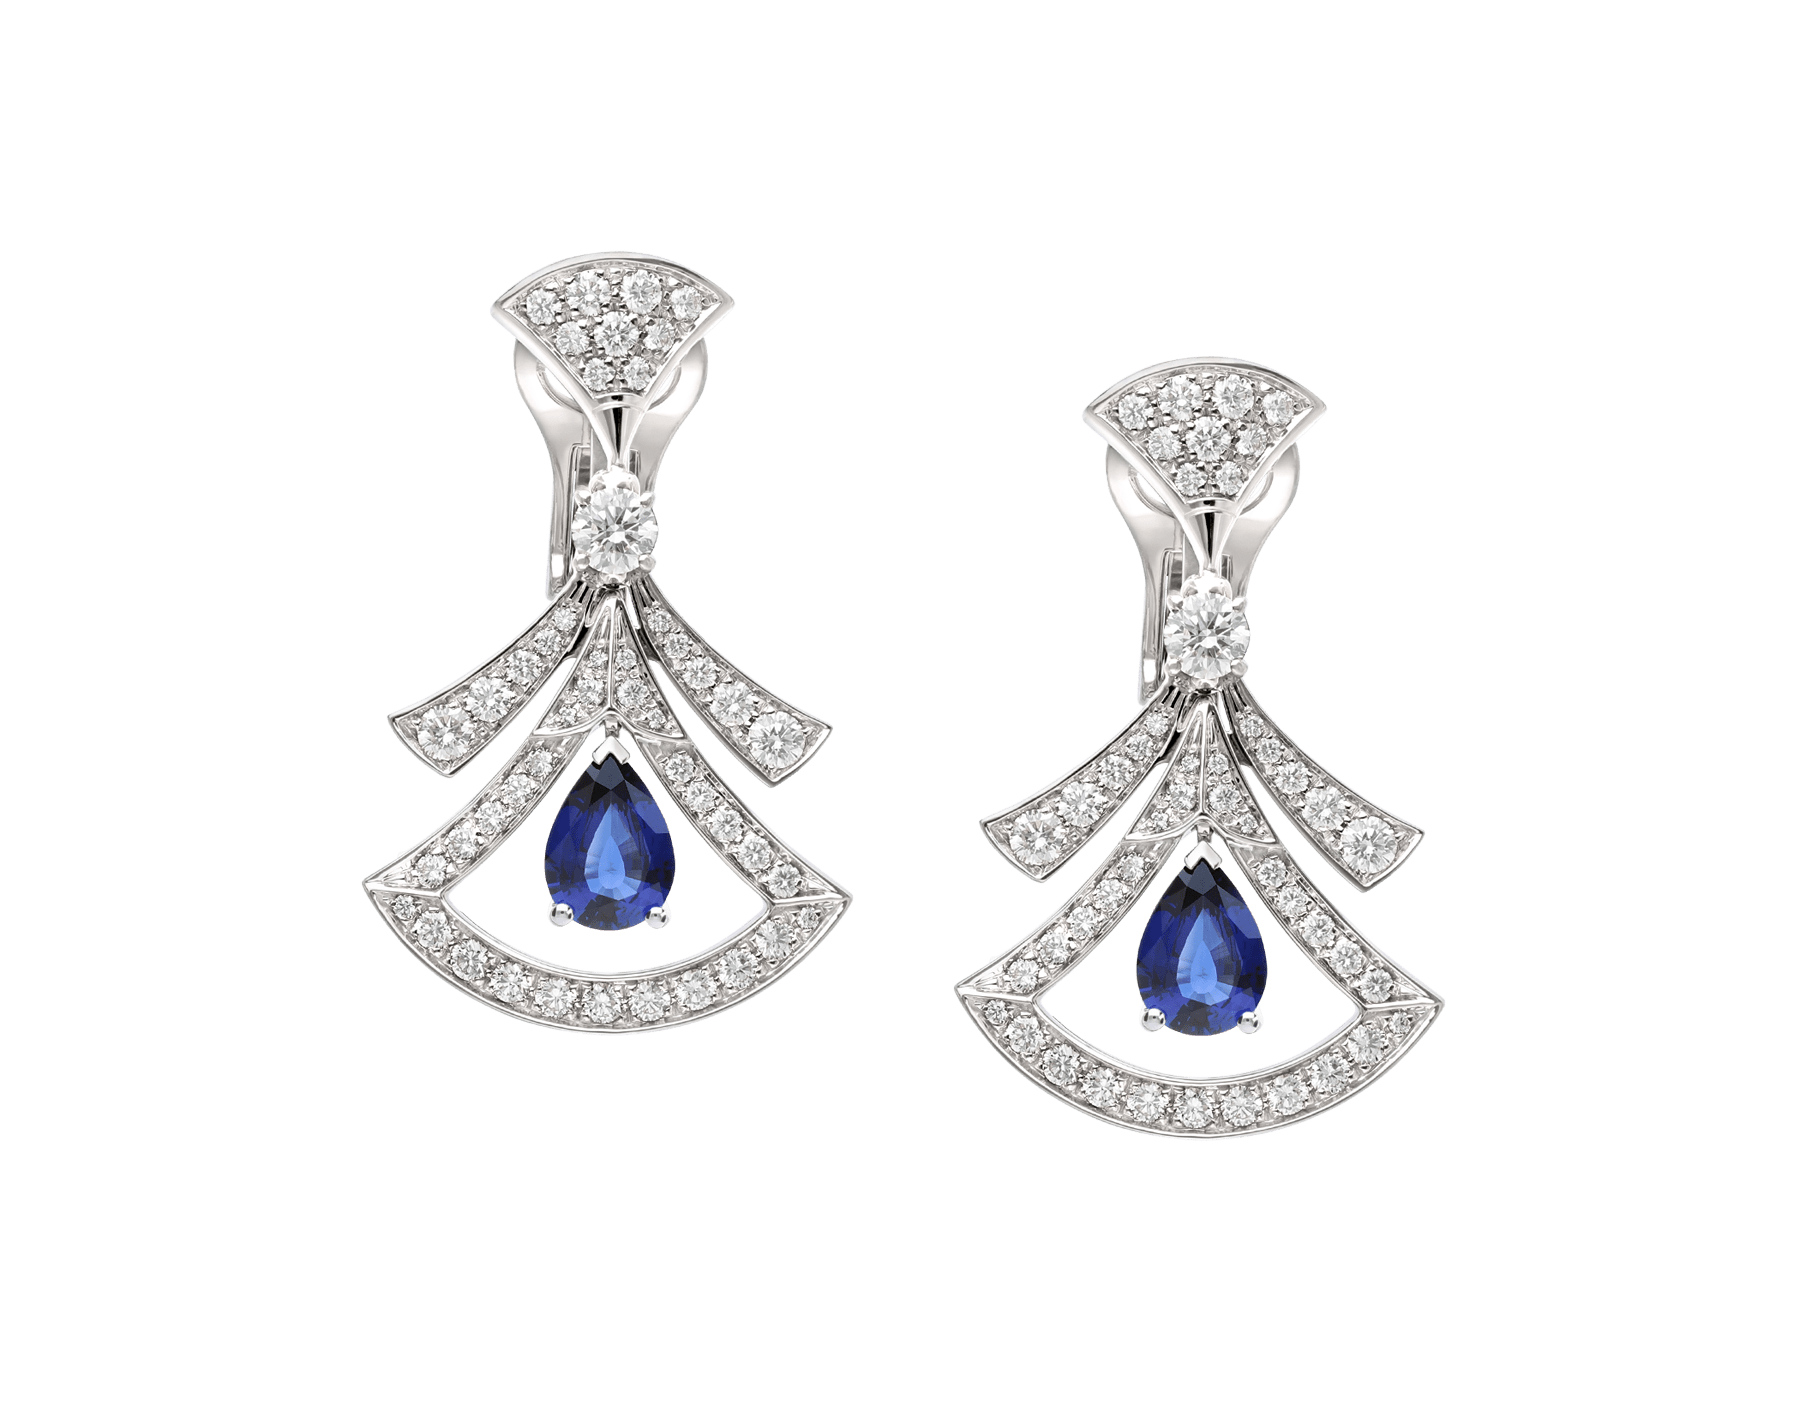 DIVAS' DREAM 18 kt white gold openwork earrings, set with pear-shaped sapphires, round brilliant-cut and pavé diamonds. 357324 image 1